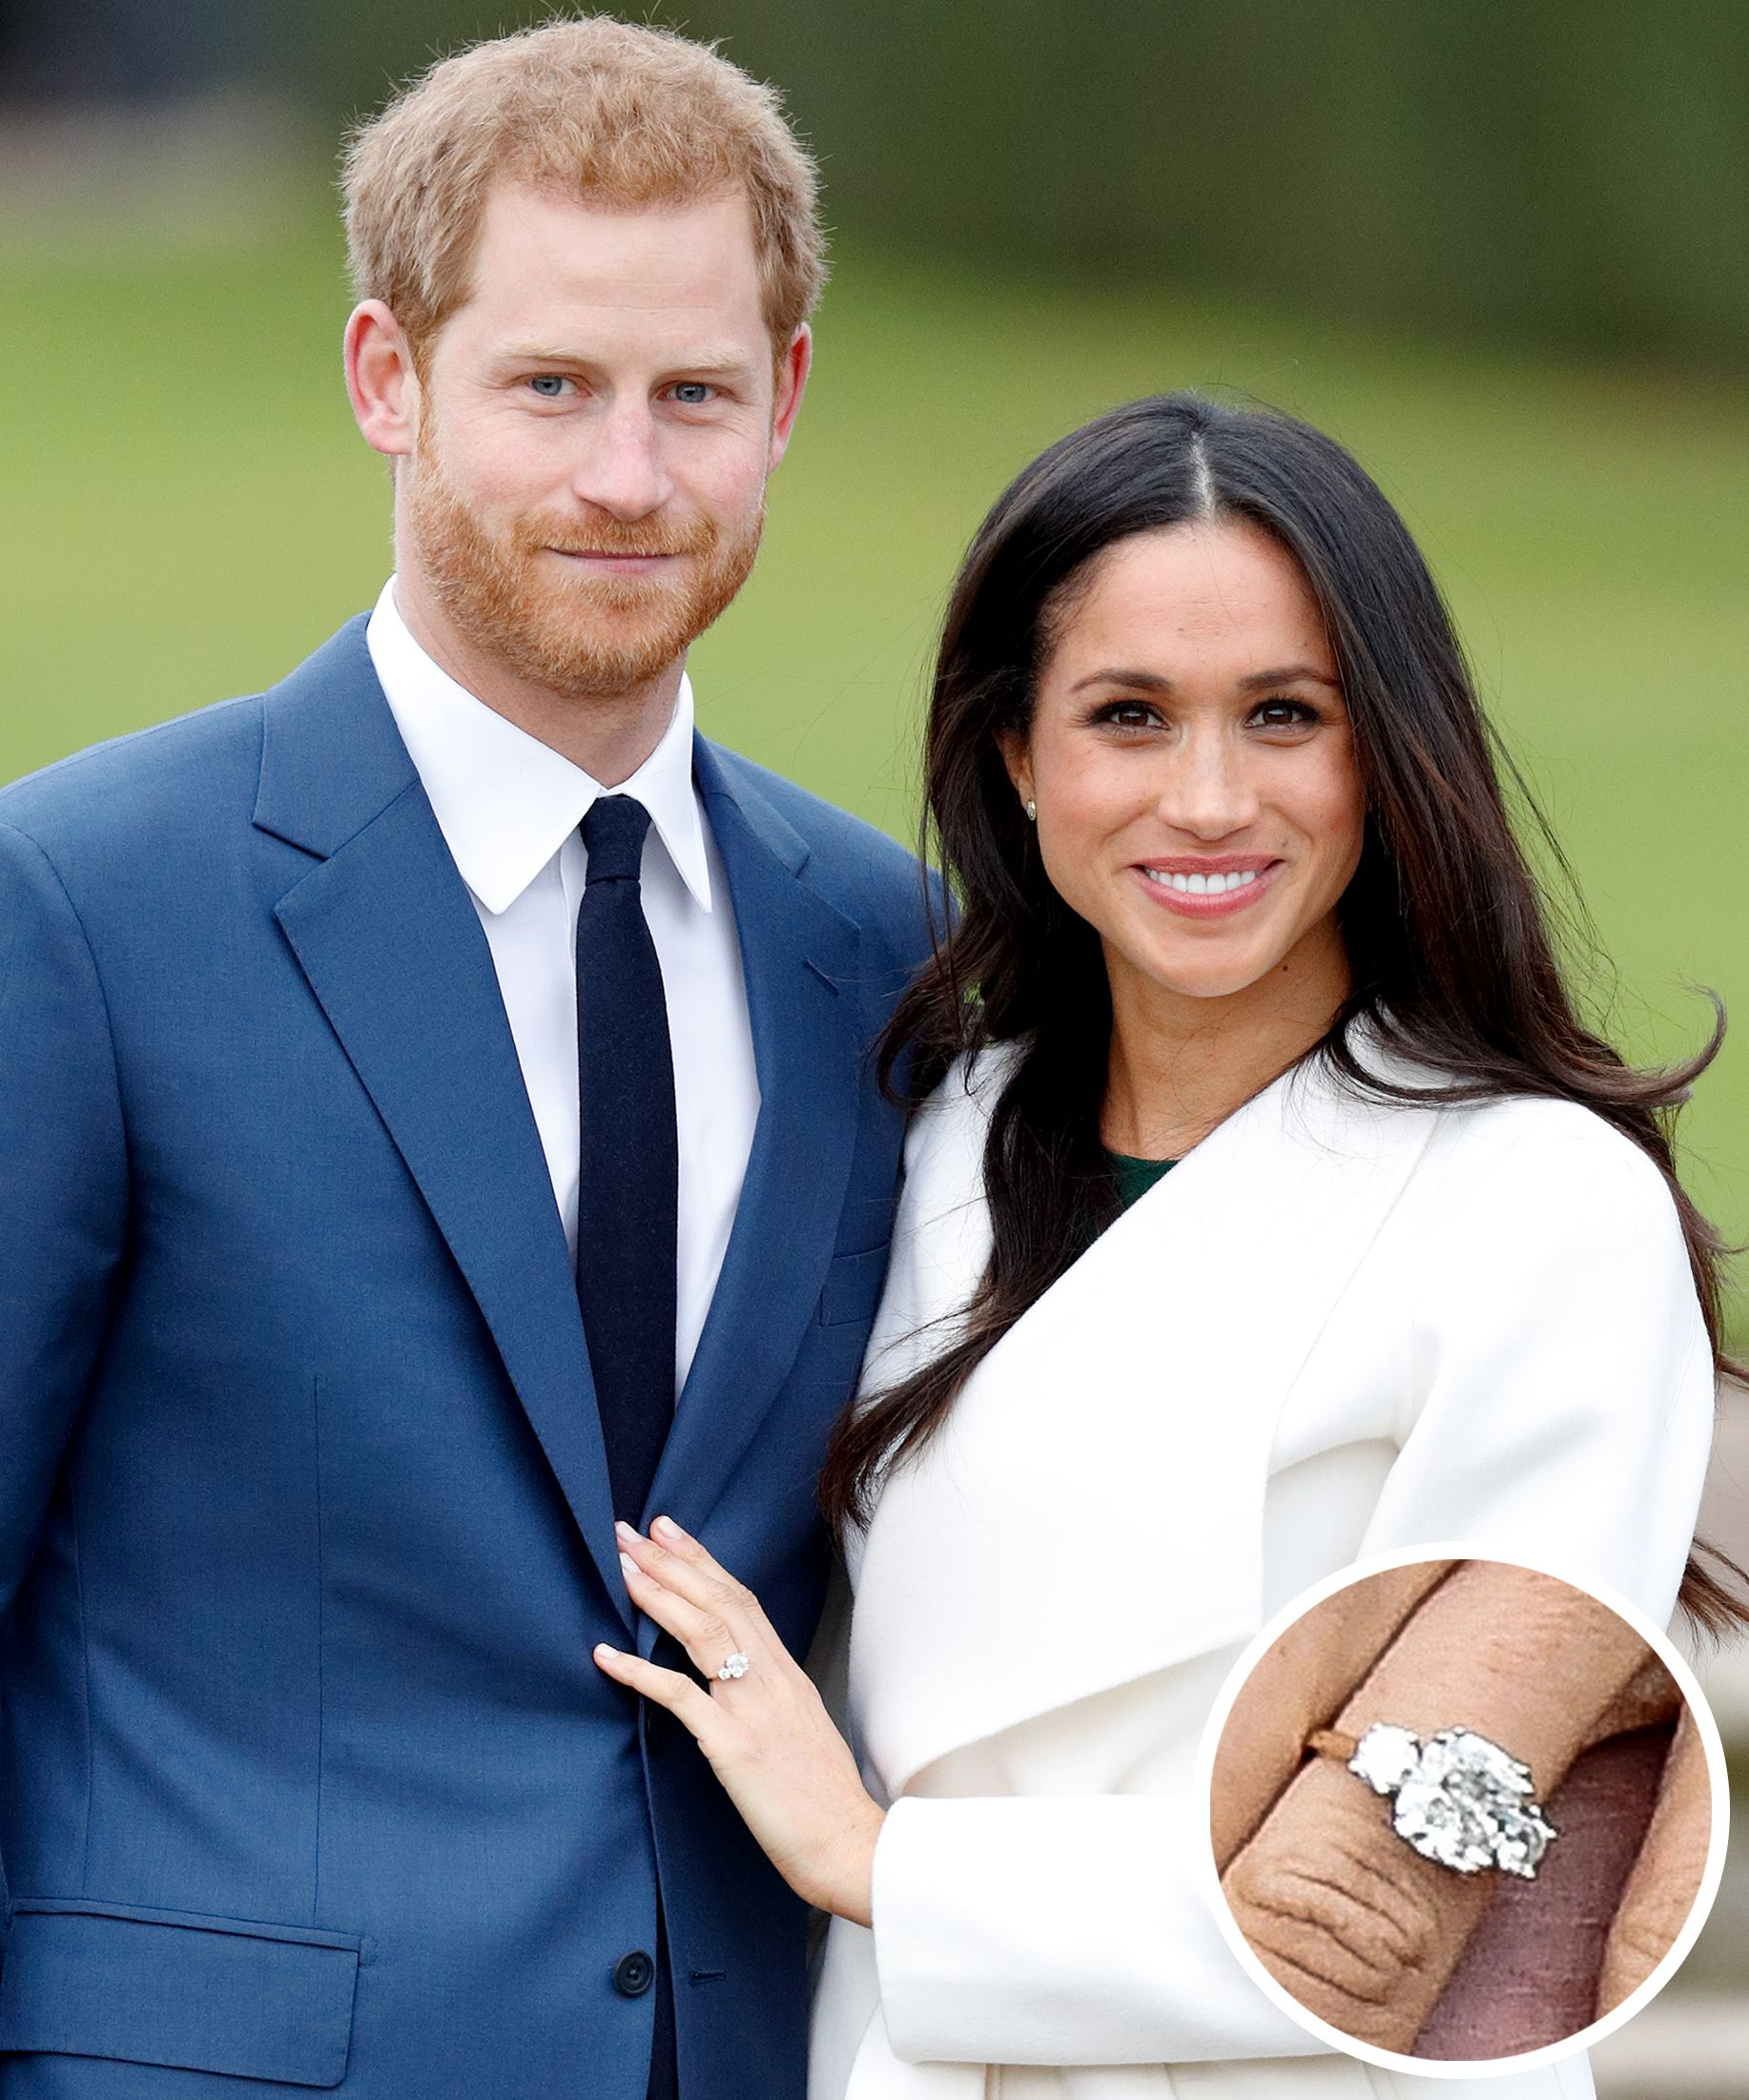 a pose in proud e rings meghan s she photograph shows markle us diamond engagement they ring as actress his fianc off diana designed harry britain with the sunken stands prince by royalty for her whilst fiance